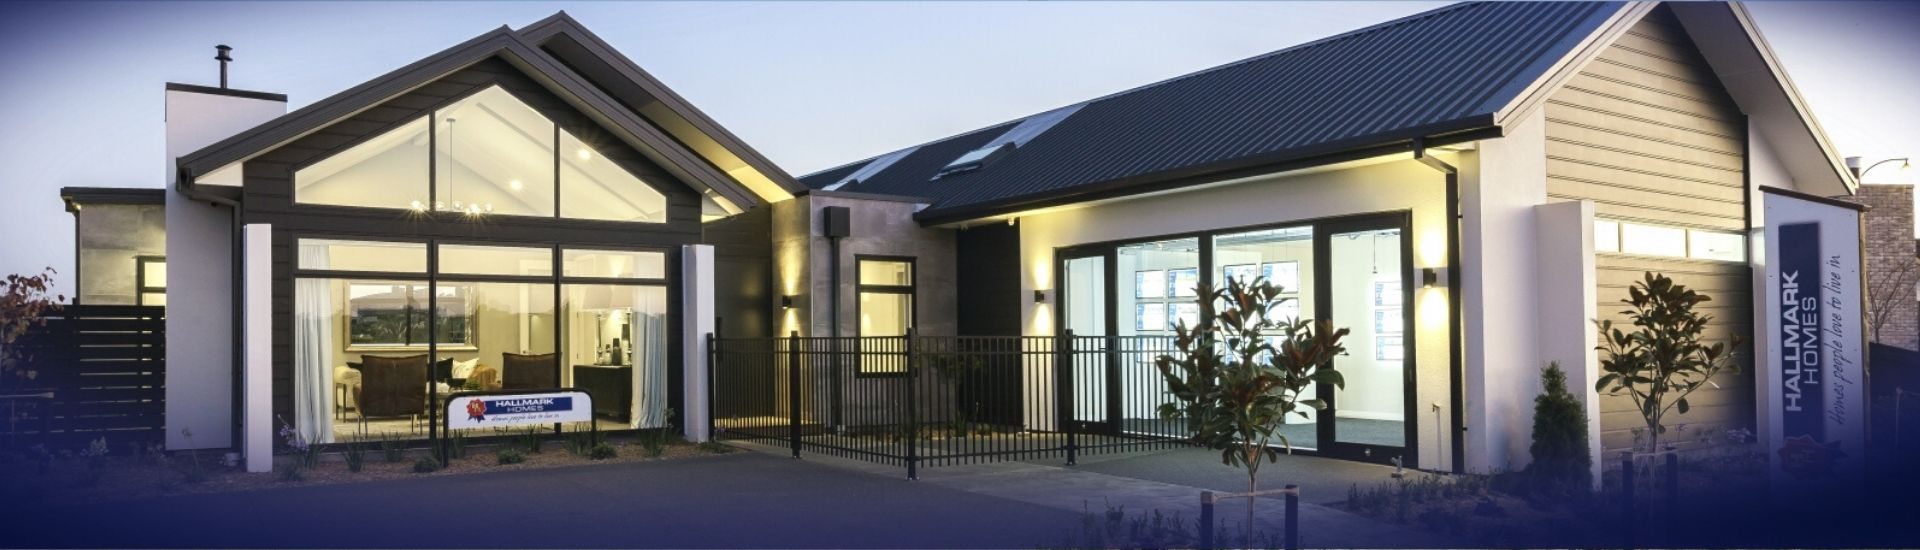 Hallmark Homes Architectural Features for Your New Home Lincoln Showhome - Architectural Features for Your New Home